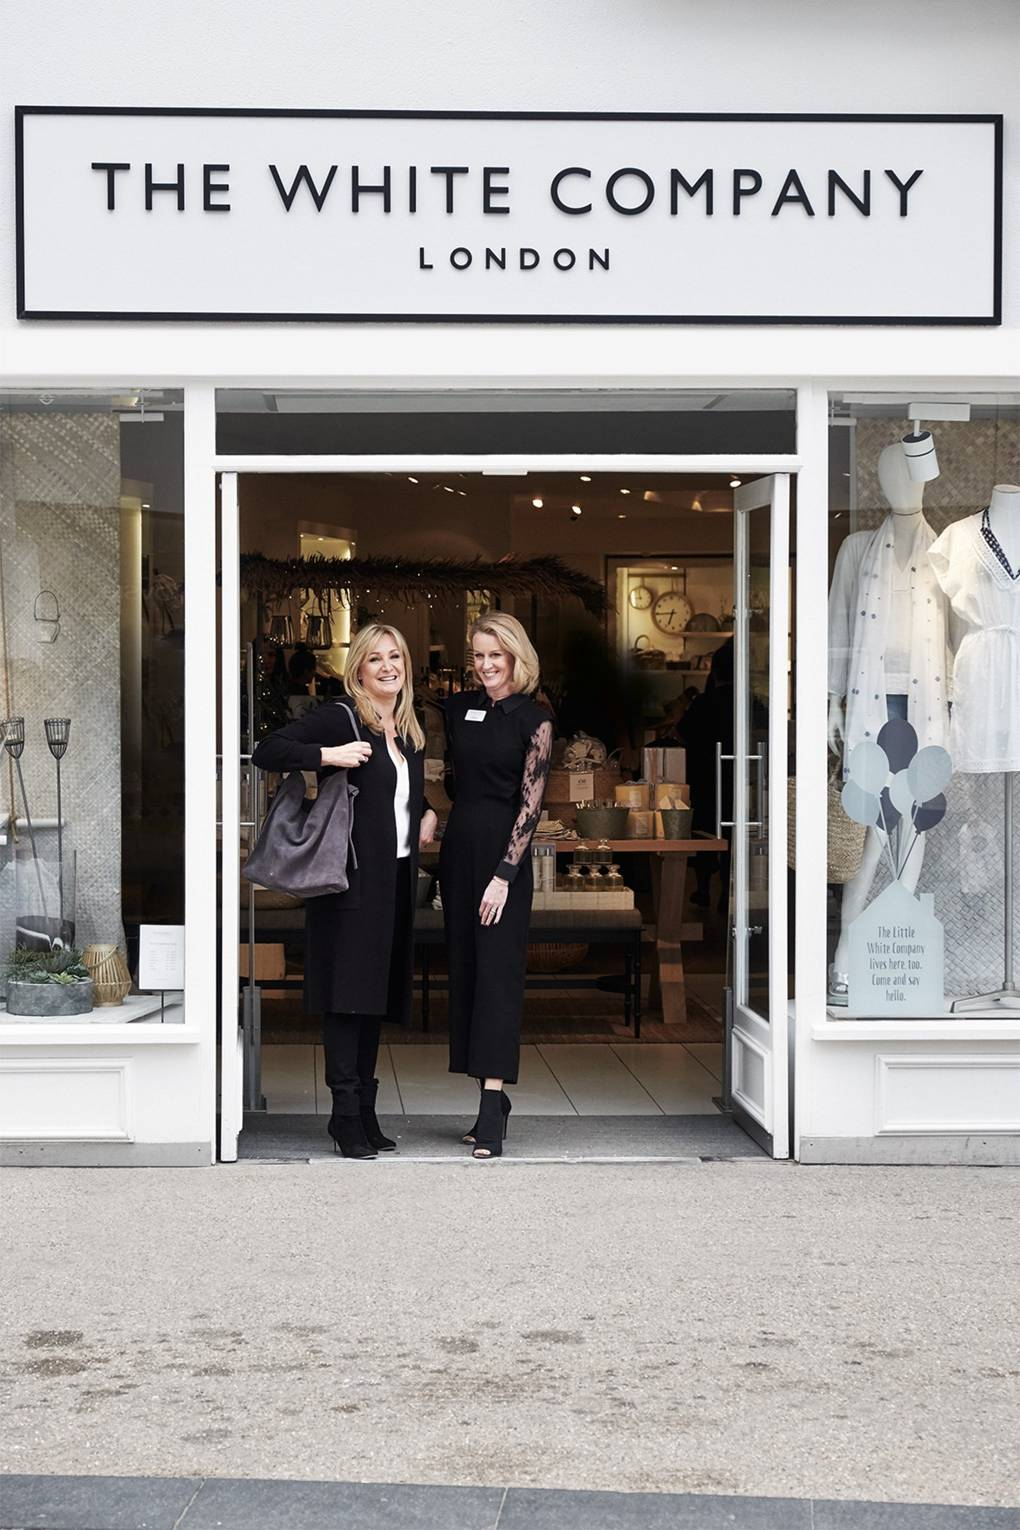 The White Company founder Chrissie Rucker's English country